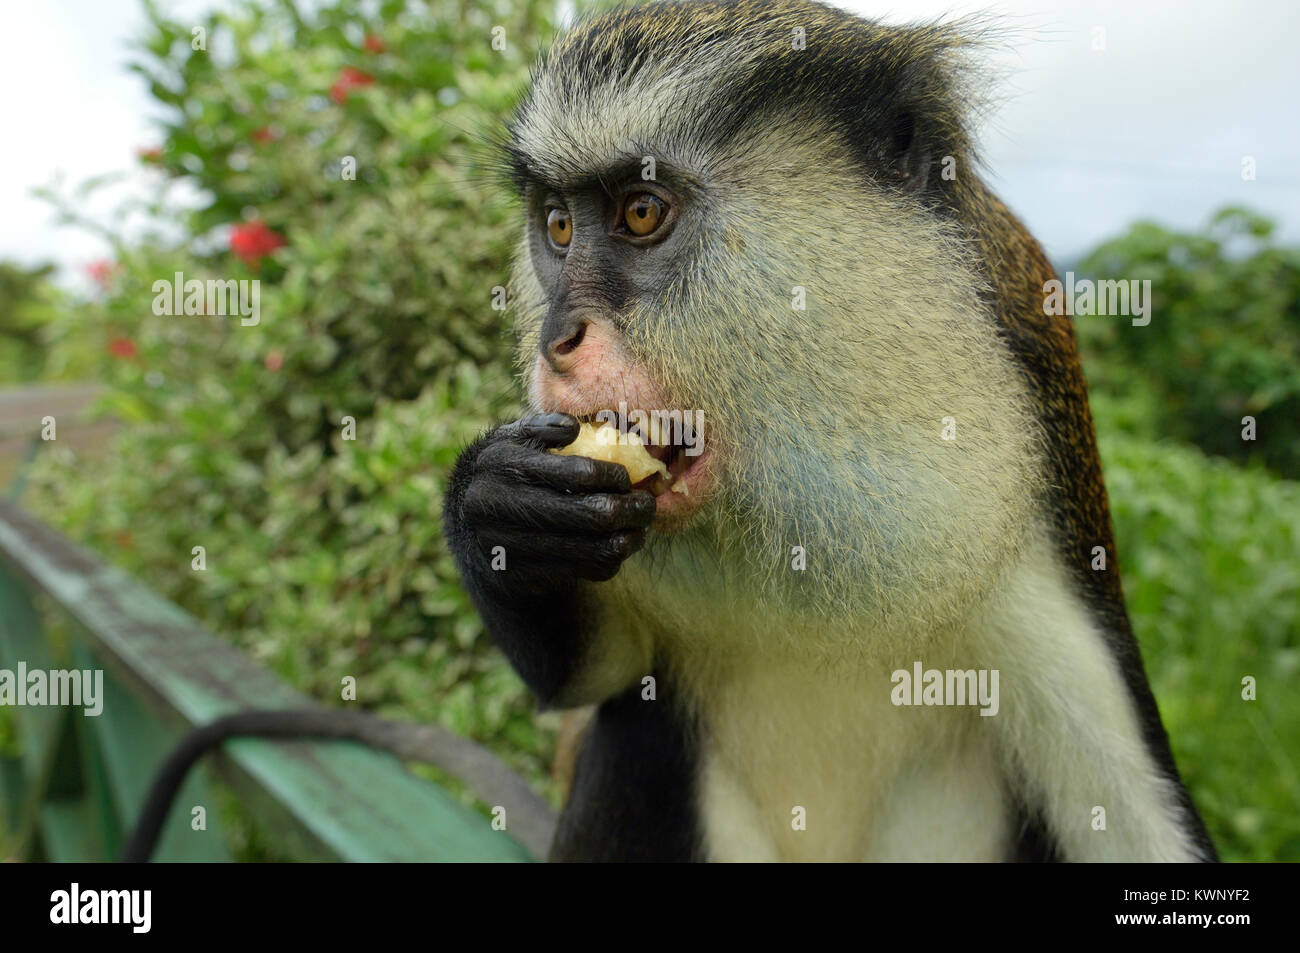 Mona monkey, Grand Etang National Park, Grenada, Caribbean - Stock Image